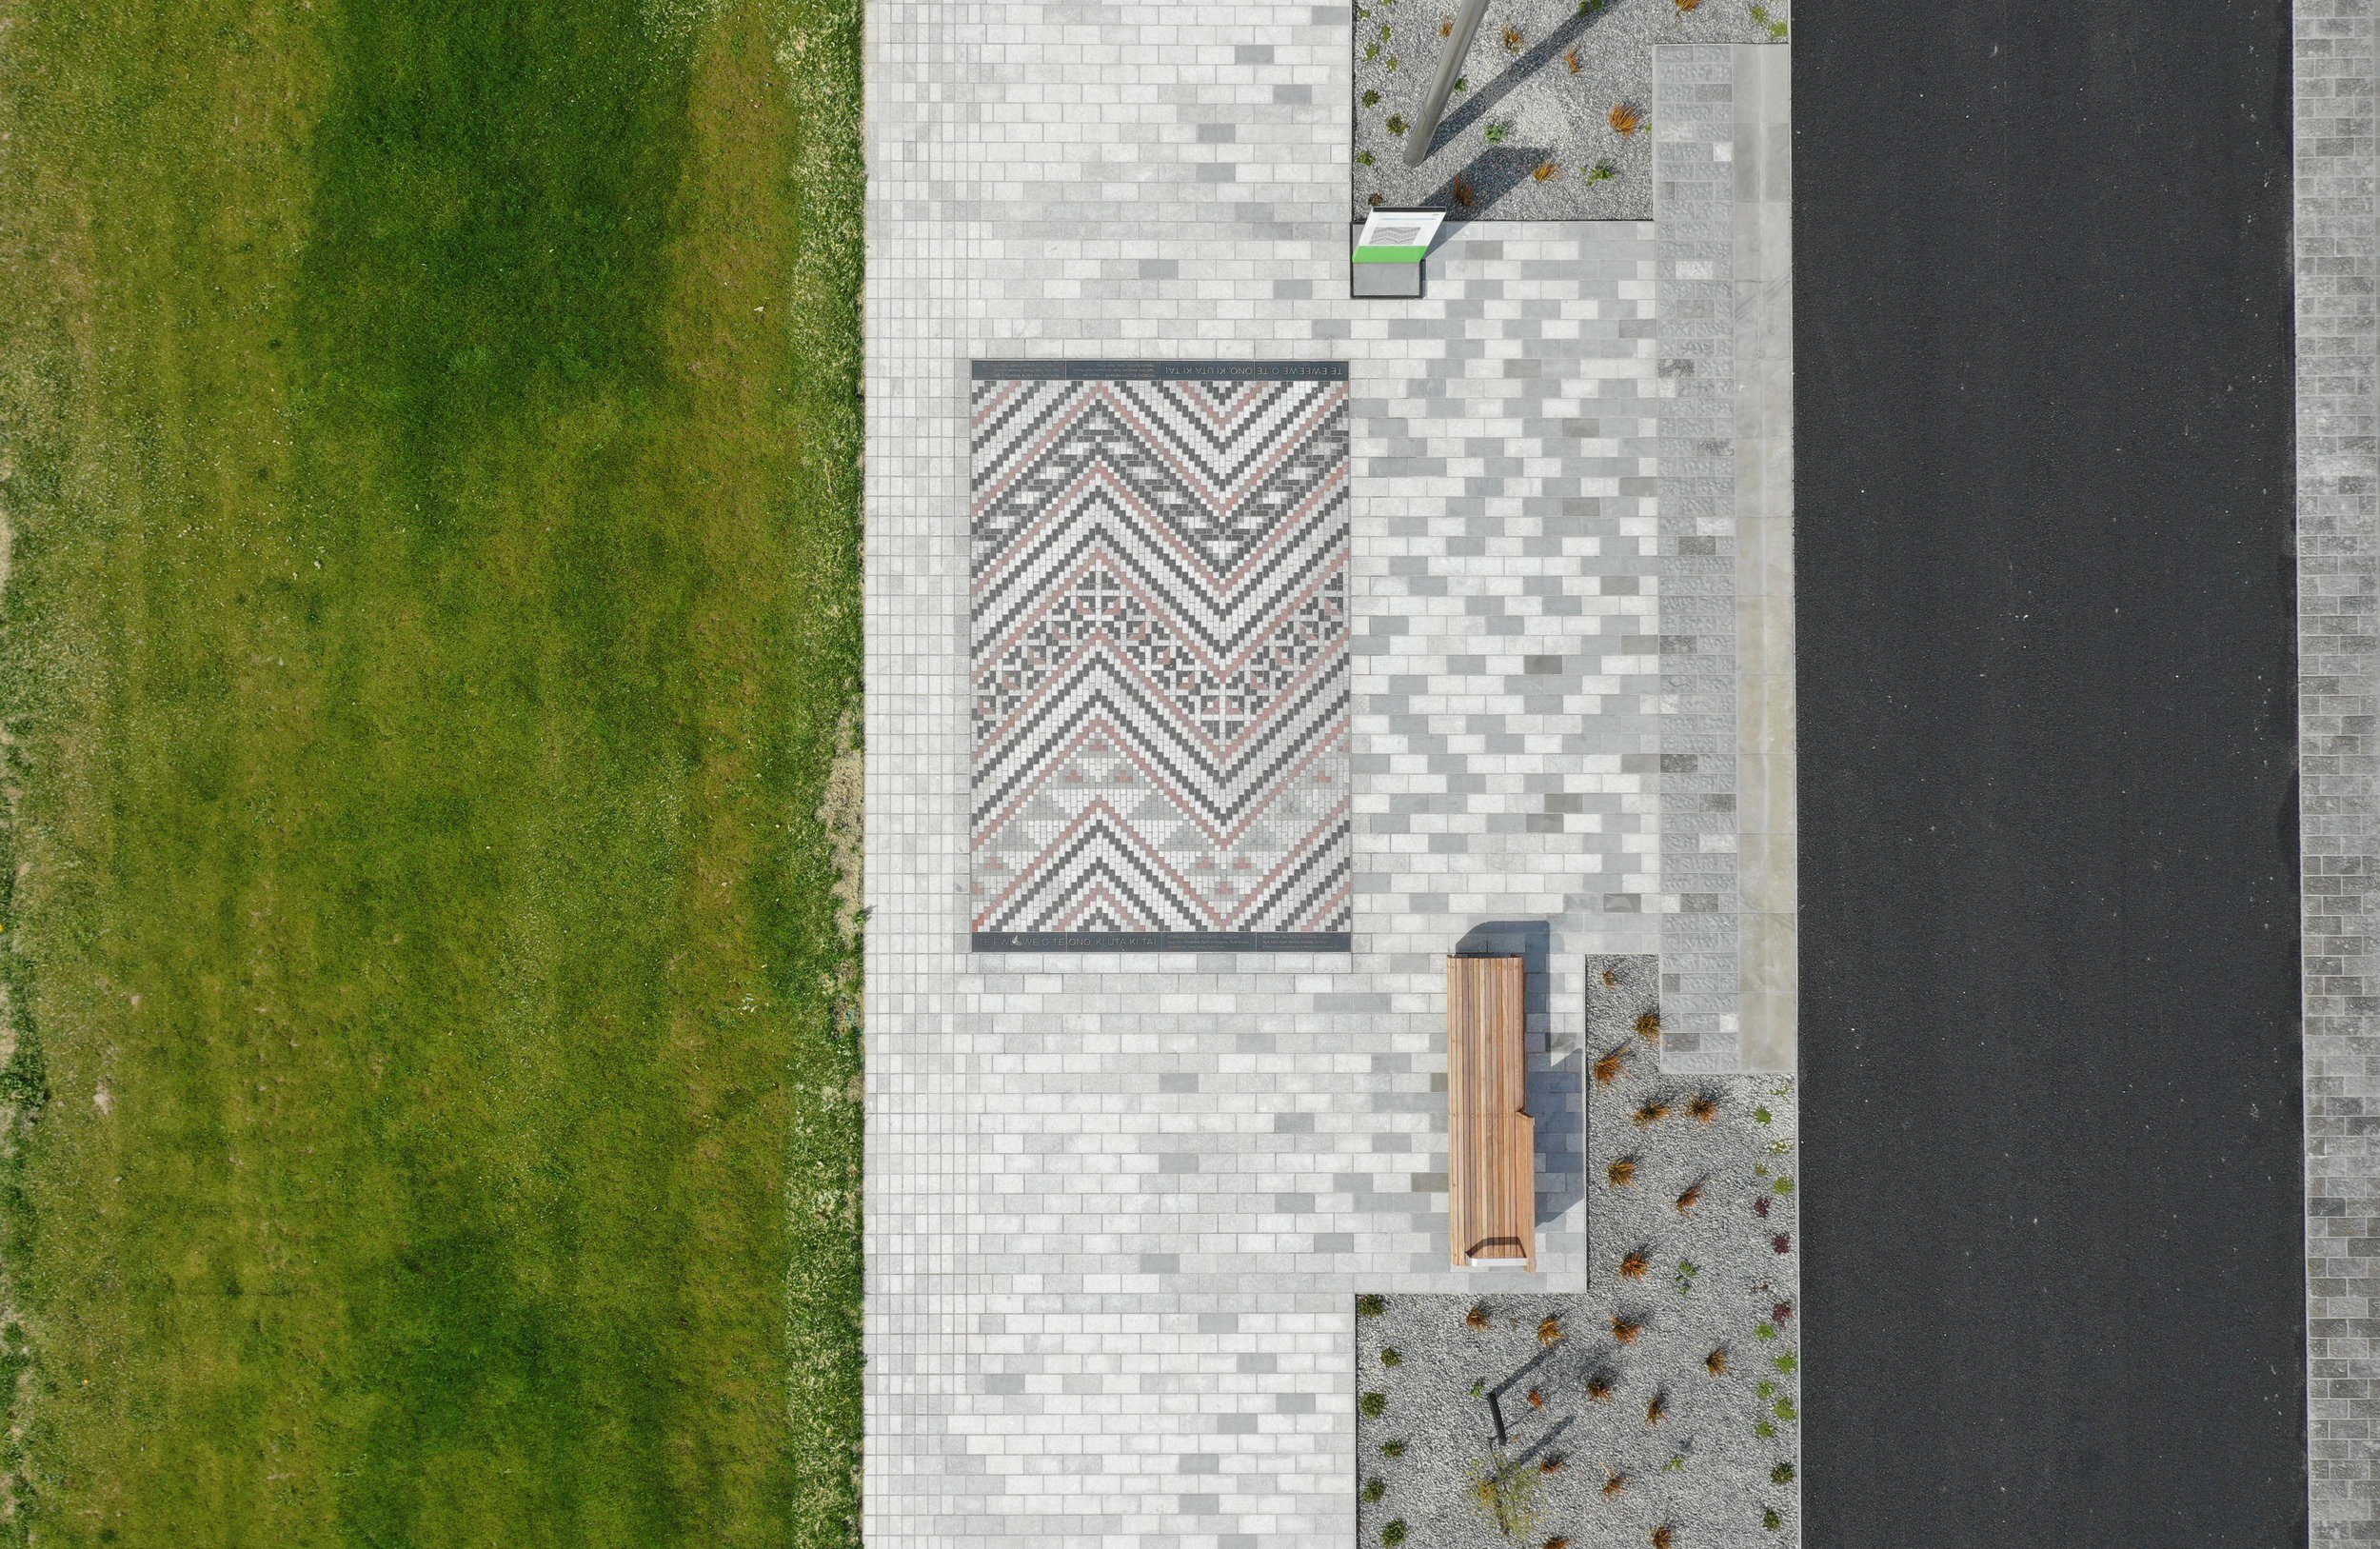 Avon River Promenade - 3km of shared zone combining landscape and integrated artworks - including this example of Ngā Whāriki Manaaki - Woven Mats of Welcome within promenade paving.